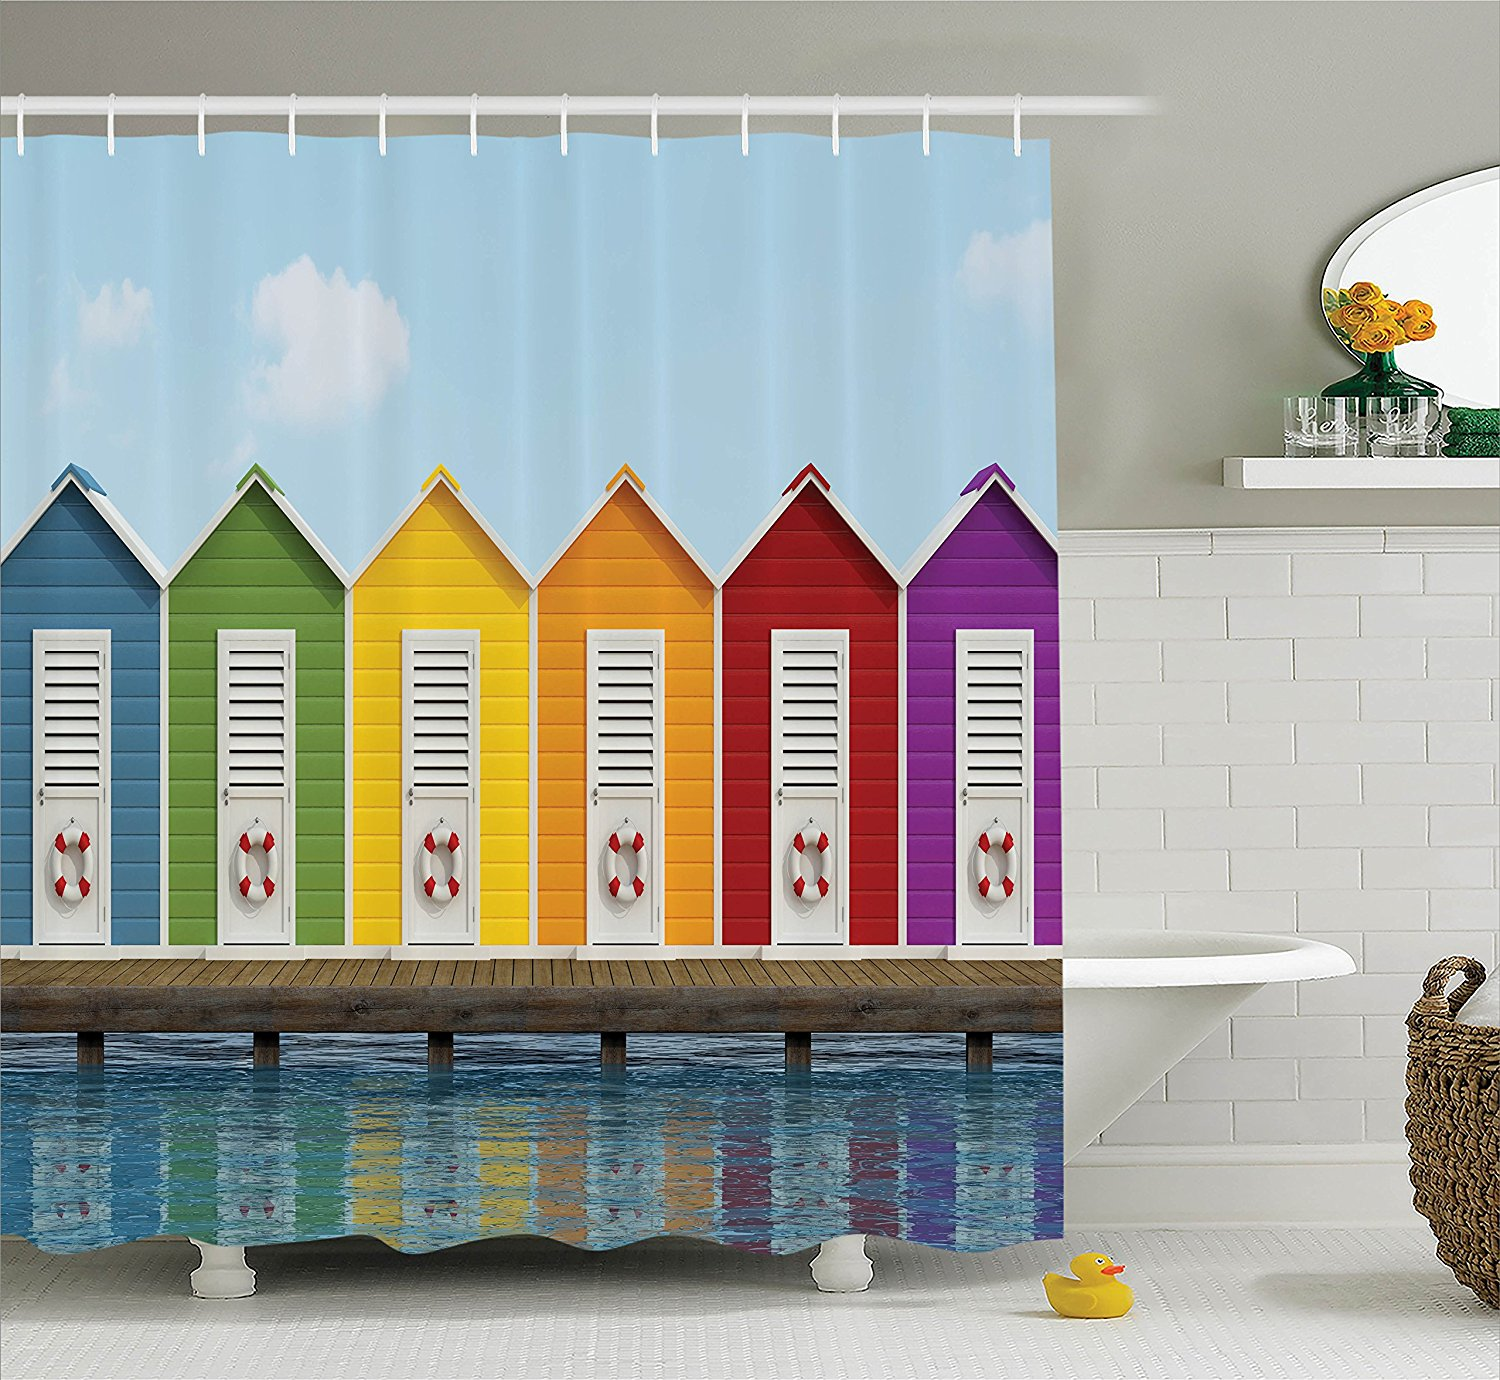 House Decor Shower Curtain Set By Ambesonne Image Of Colorful Beach Cabins On An Old